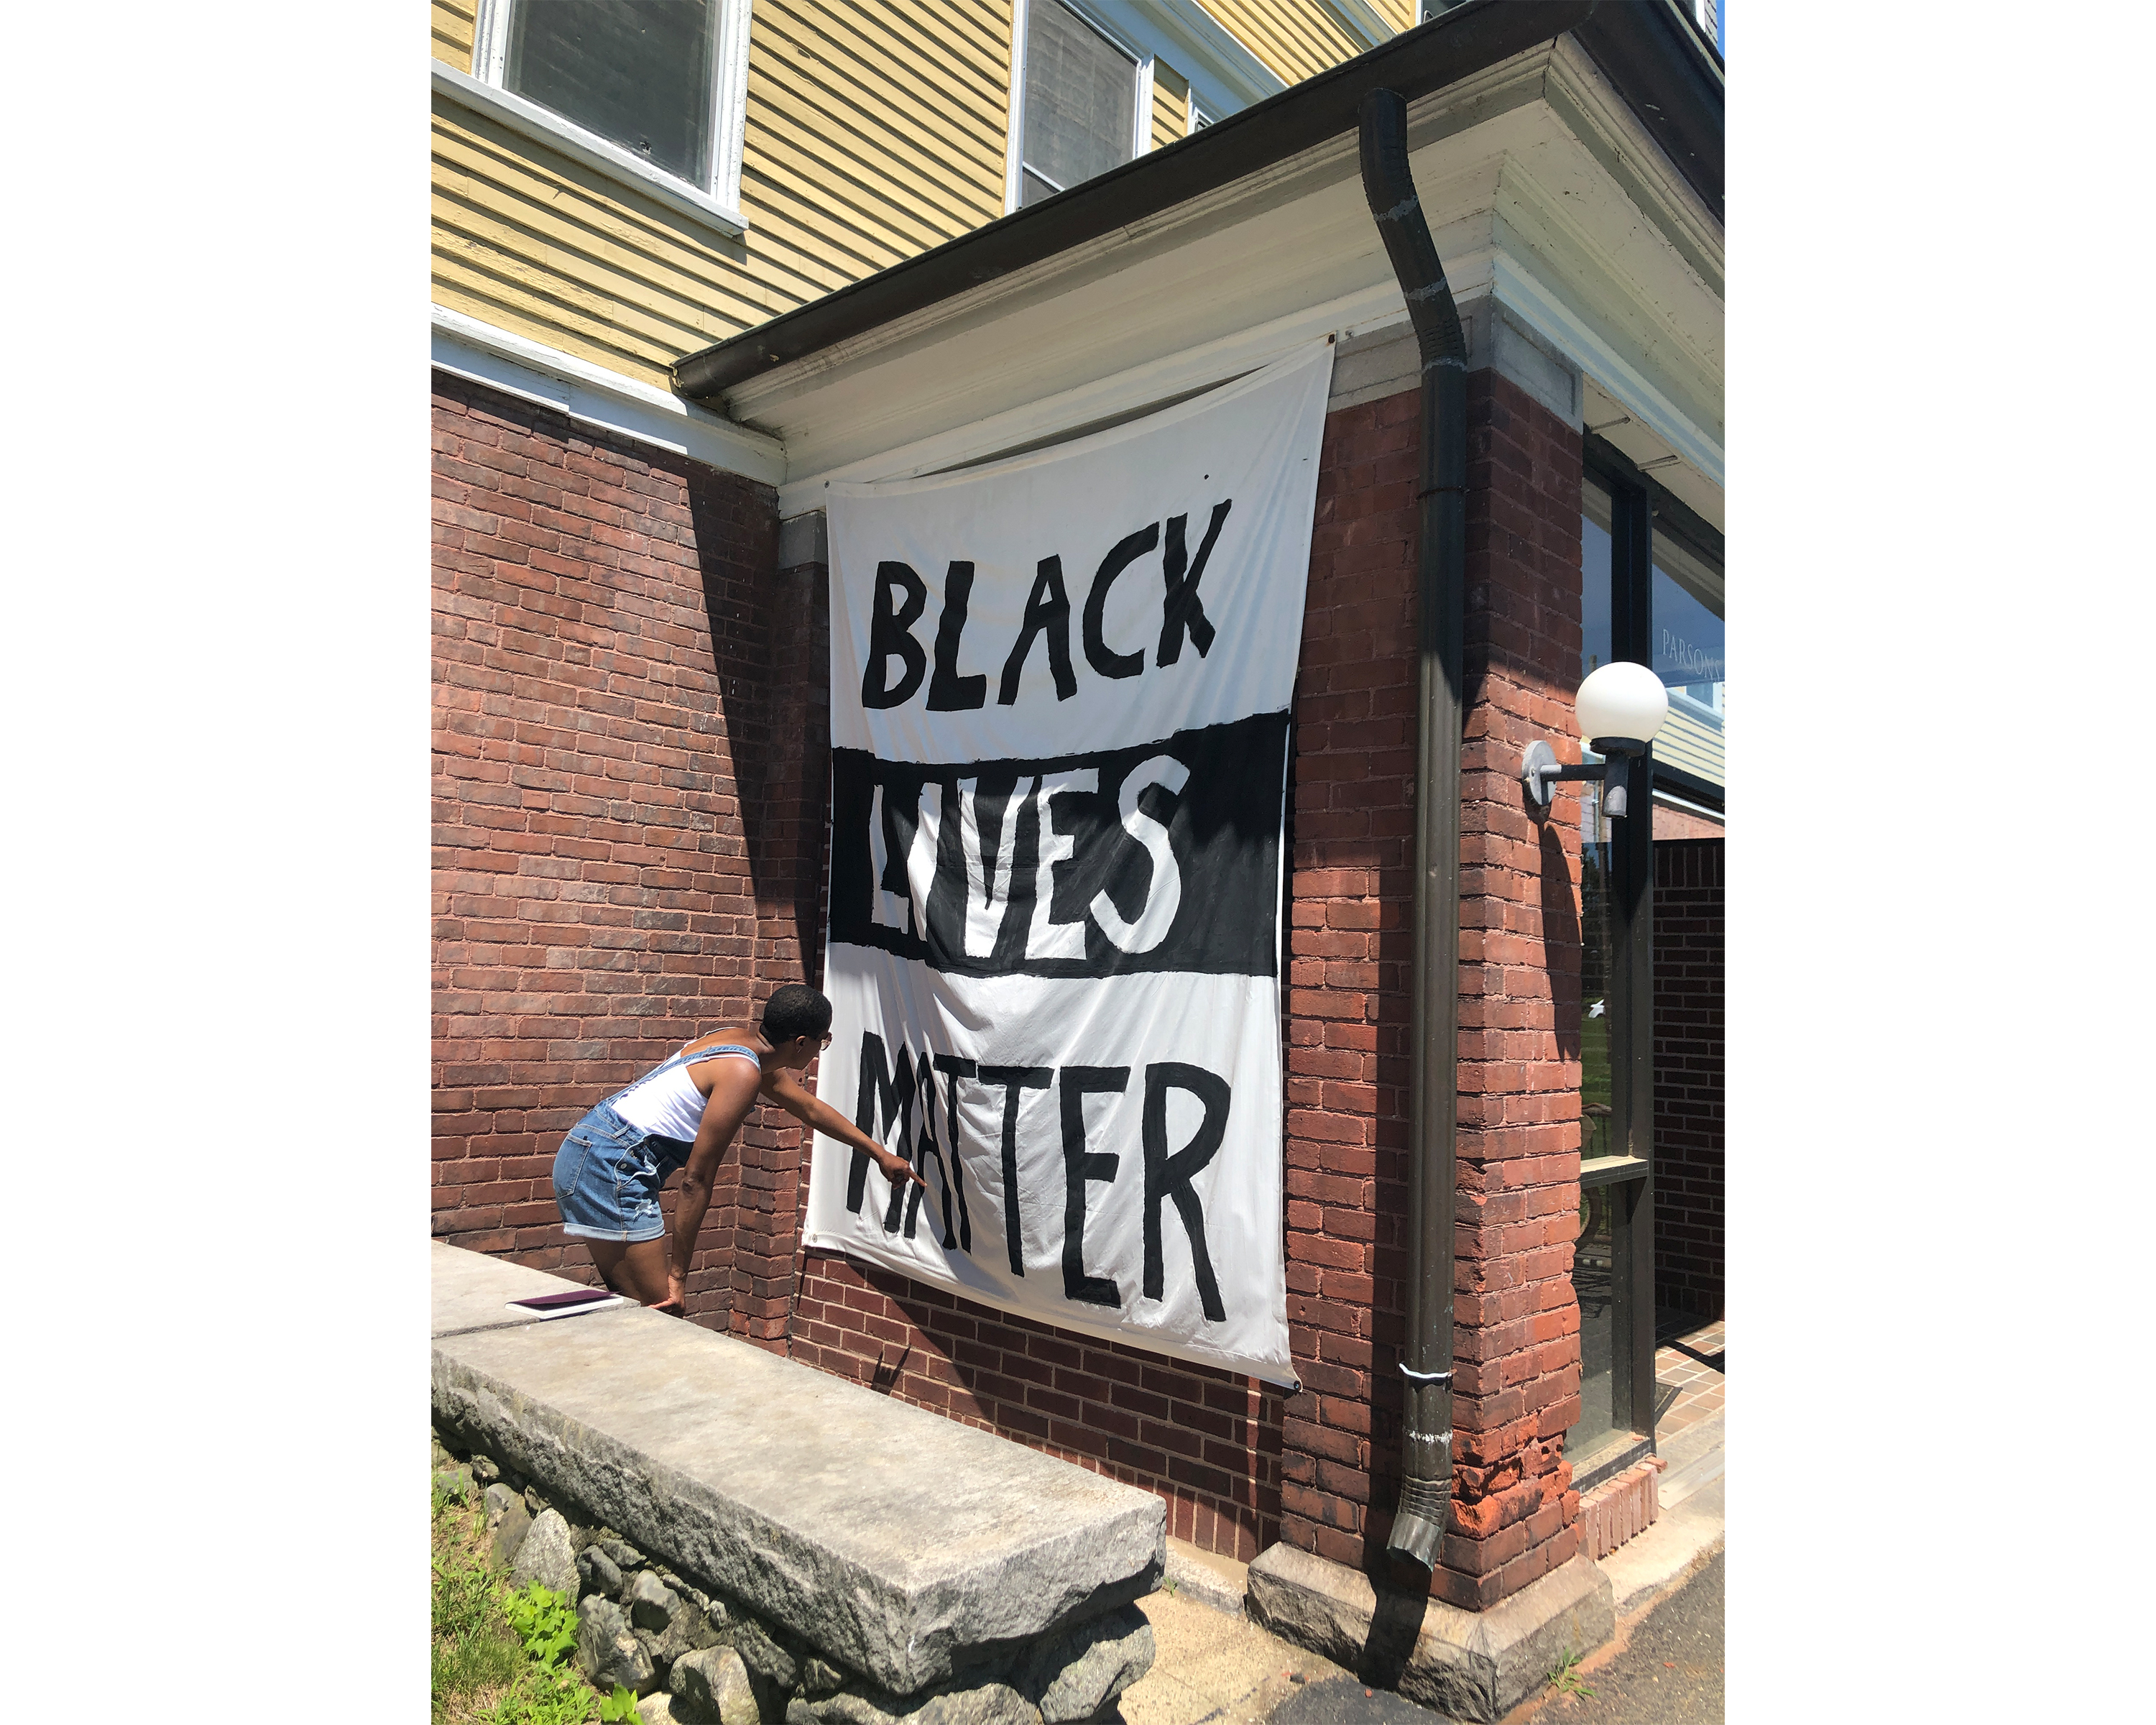 Amanda Williams next to a Black Lives Matter banner outside a Smith College house/dorm